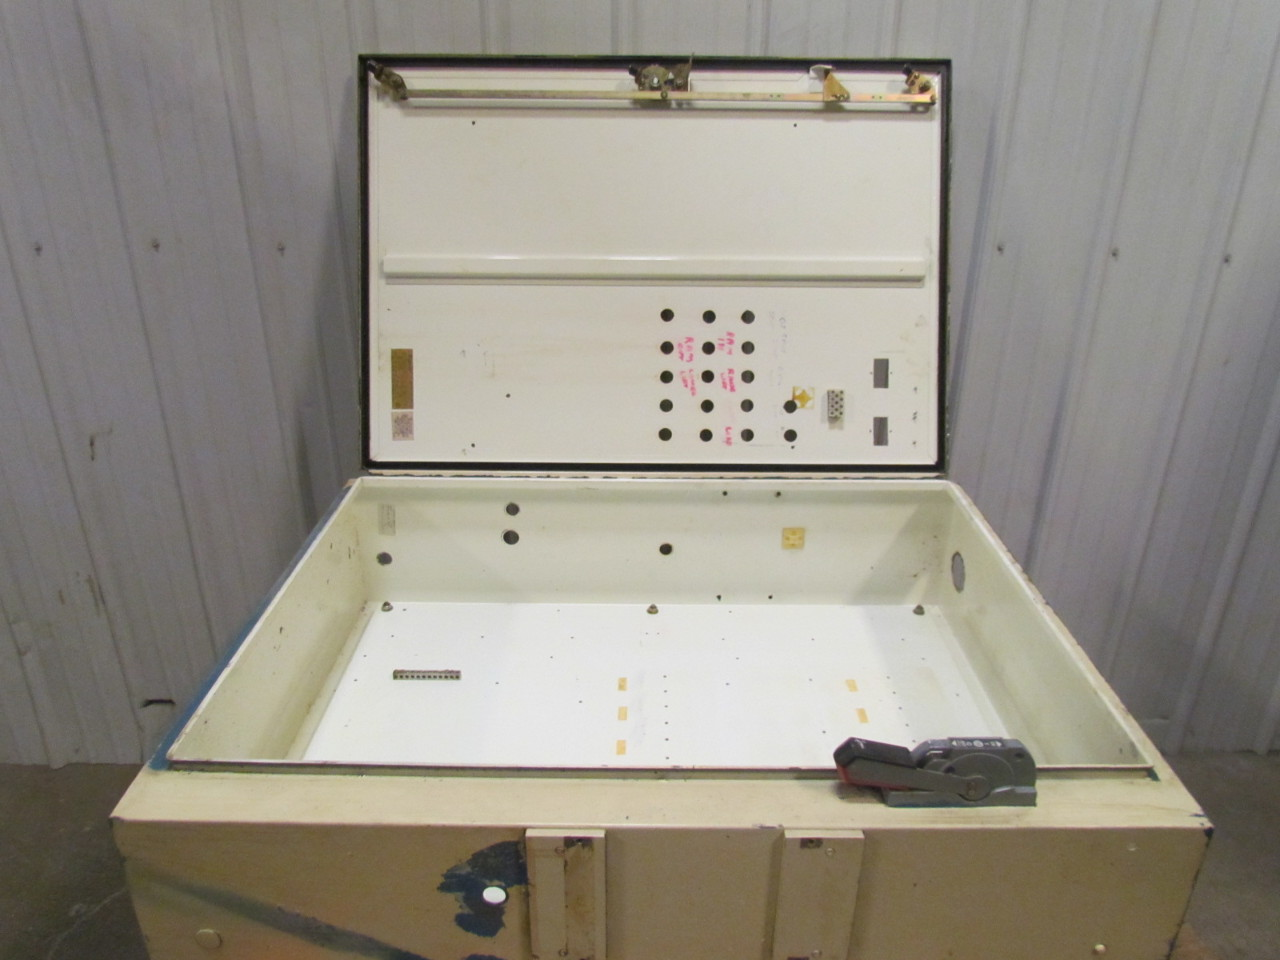 hoffman a-b 30a fusible disconnect switch electrical ... hoffman fuse box fuse box vs breaker box